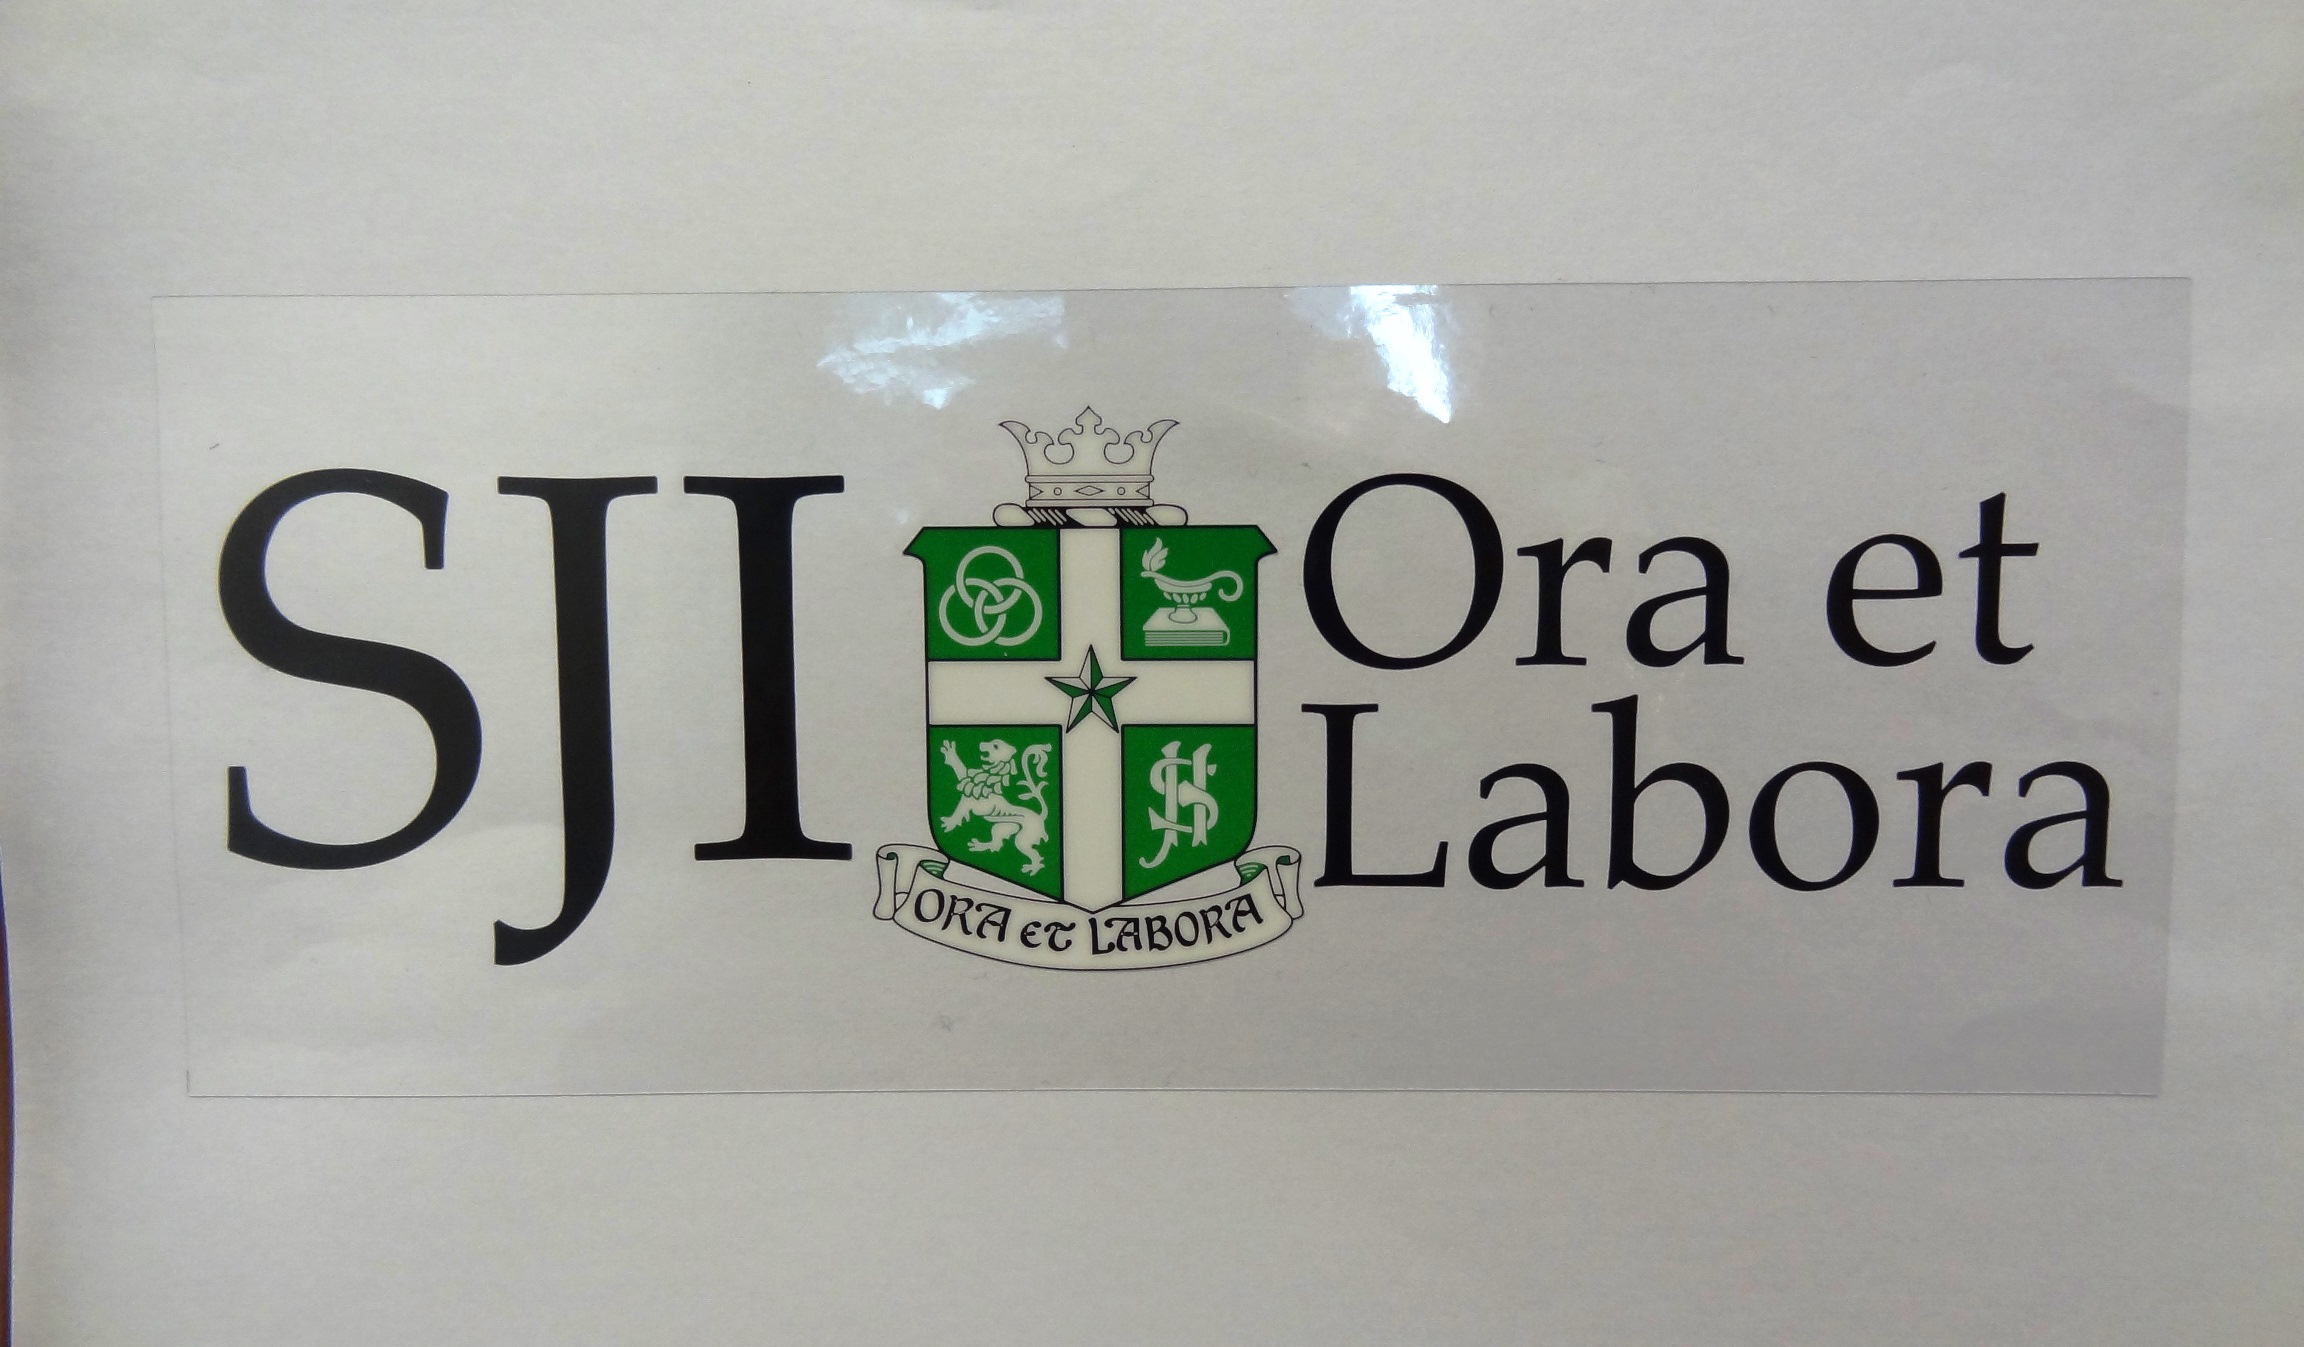 SJI Car decal 2013a.jpg